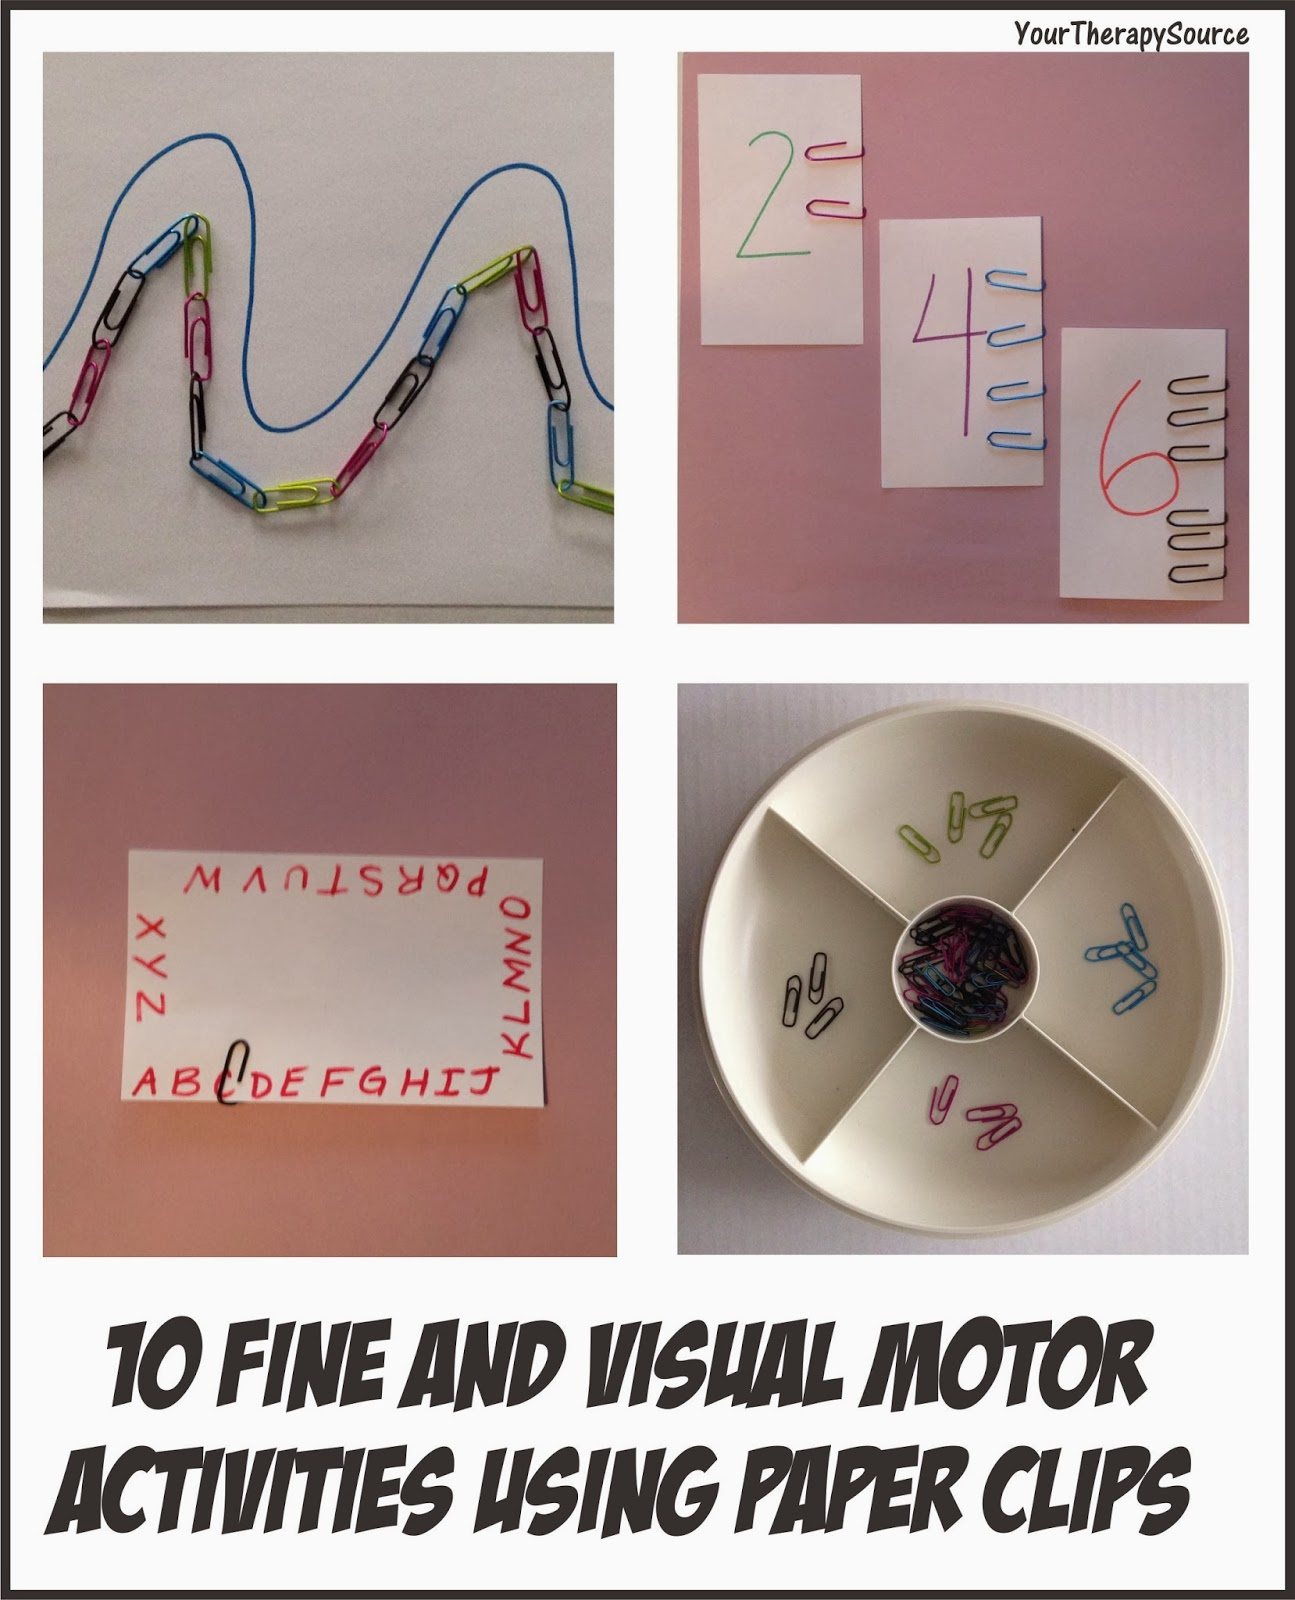 10 Fine And Visual Motor Activities Using Paper Clips Your Therapy Source